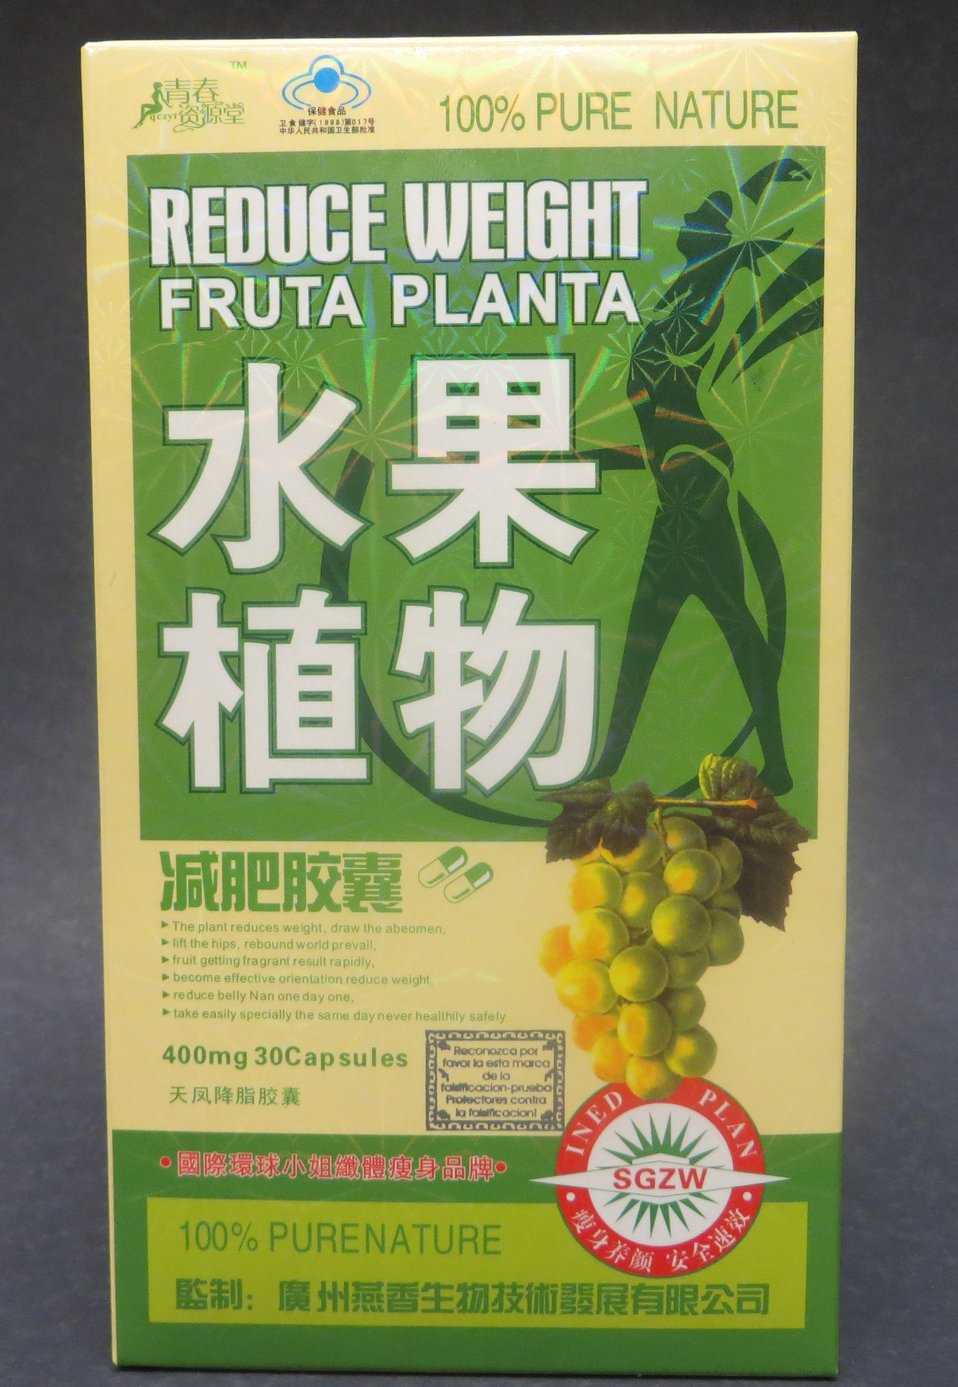 Reduce Weight Fruta Planta